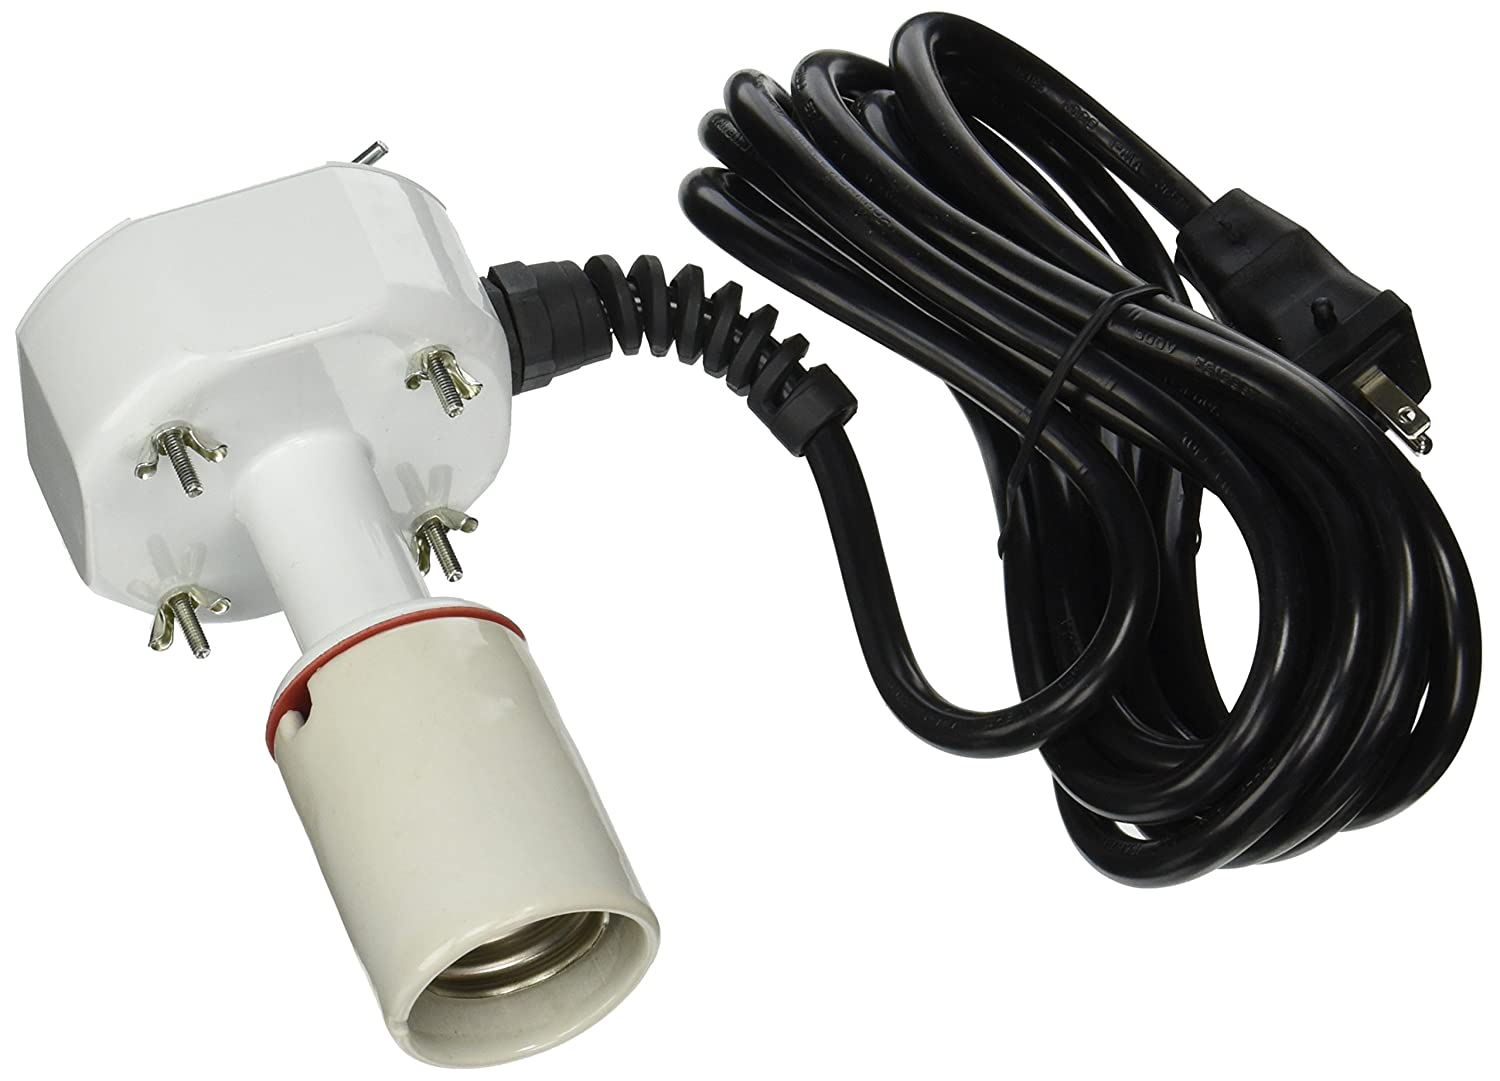 Amazon.com: Sun System 16 Gauge Socket Assembly with Lamp Cord, 15 ...